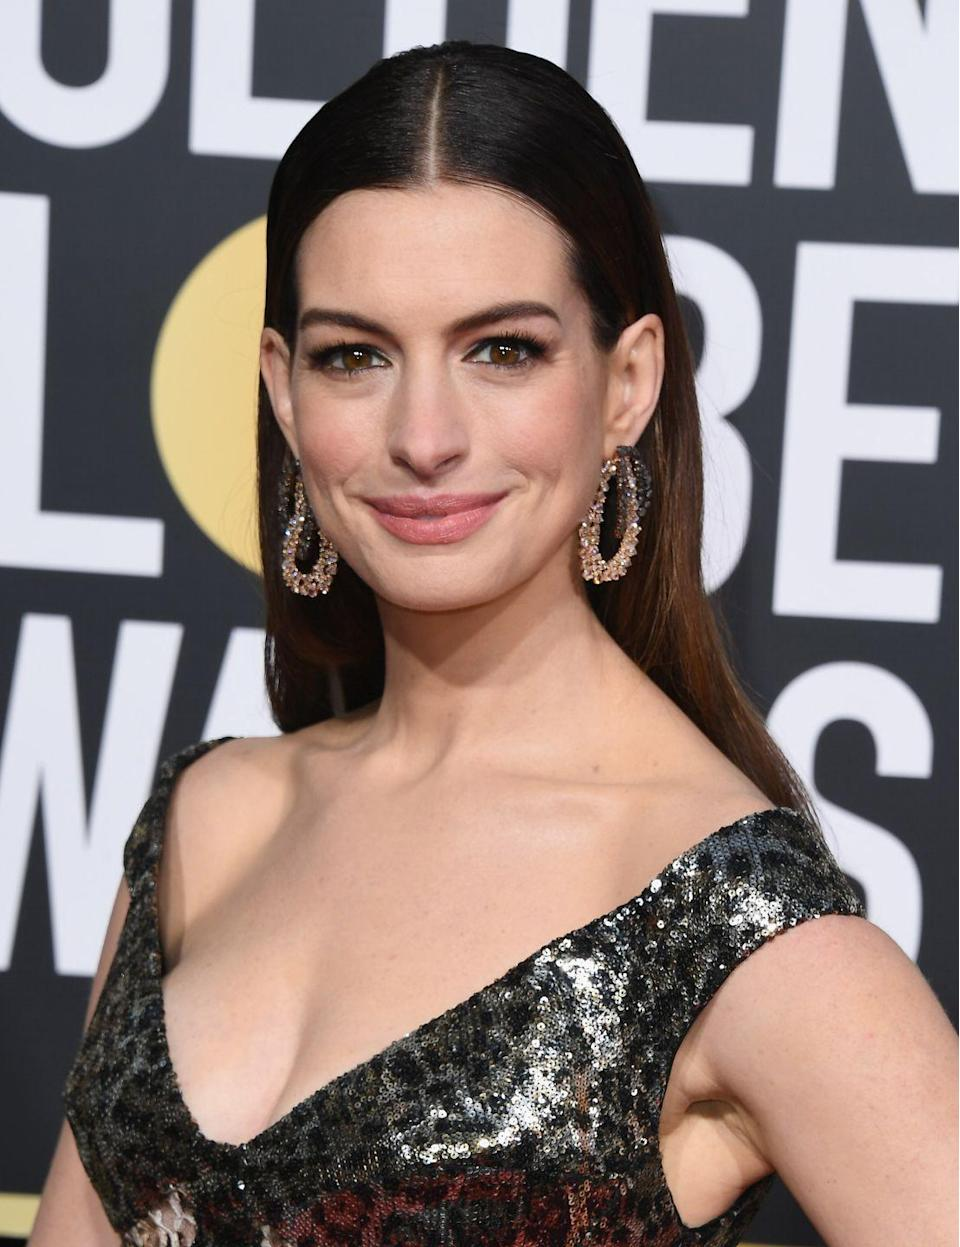 <p>We had high hopes for Anne Hathaway and Rebel Wilson's collaboration in <em>The Hustle</em>. But all hope was lost when the Oscar winner appeared on-screen with a bad British accent. It went downhill from there. </p>